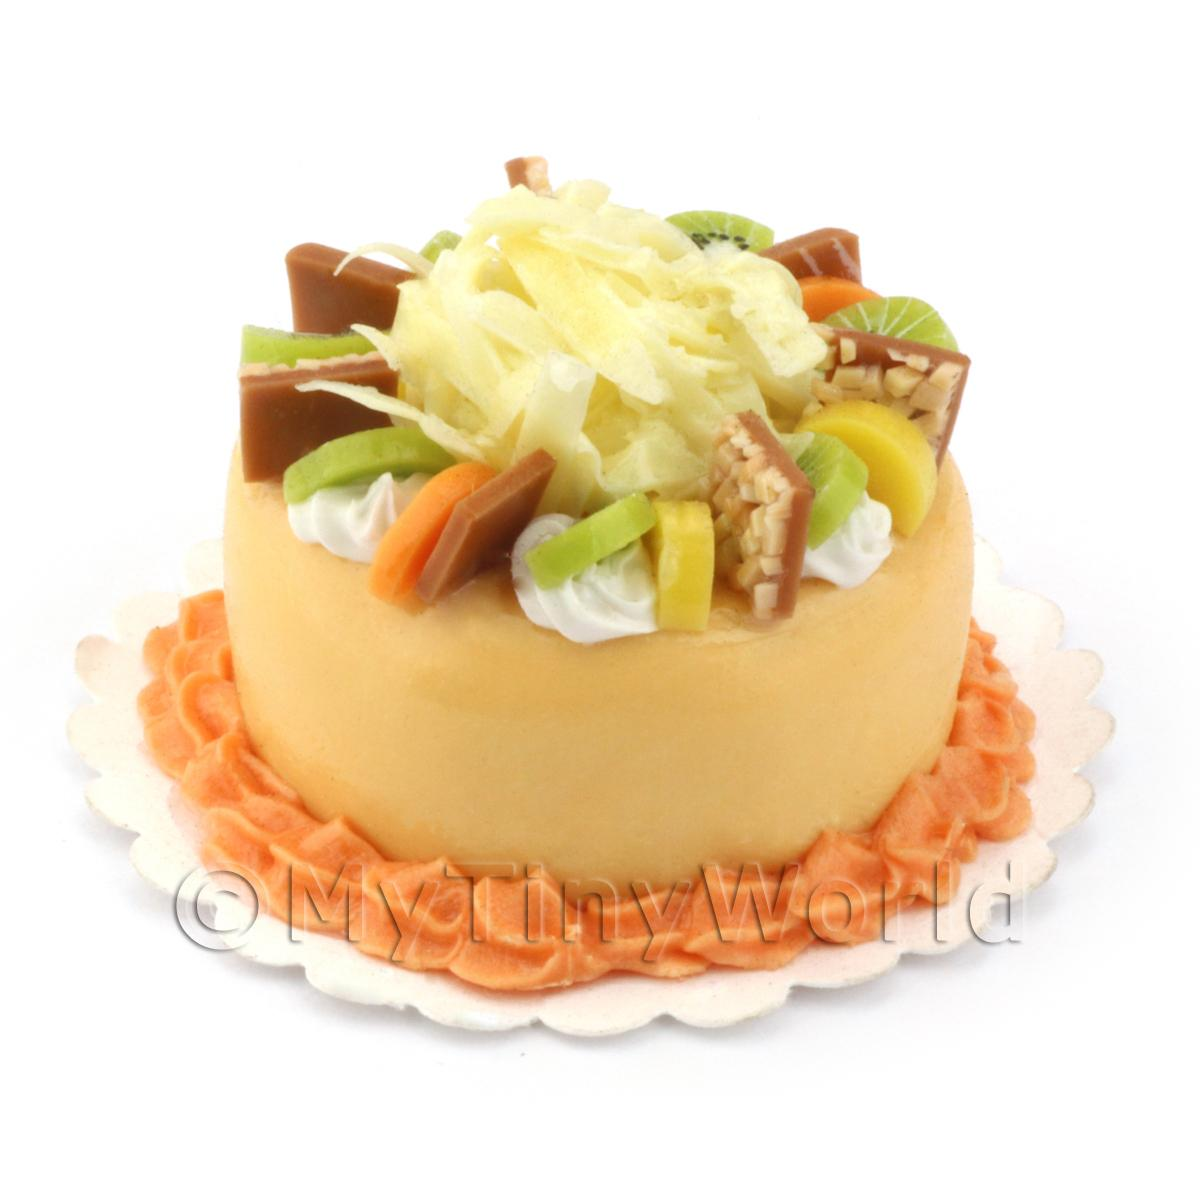 Dolls House Miniature Orange Fruity Cake